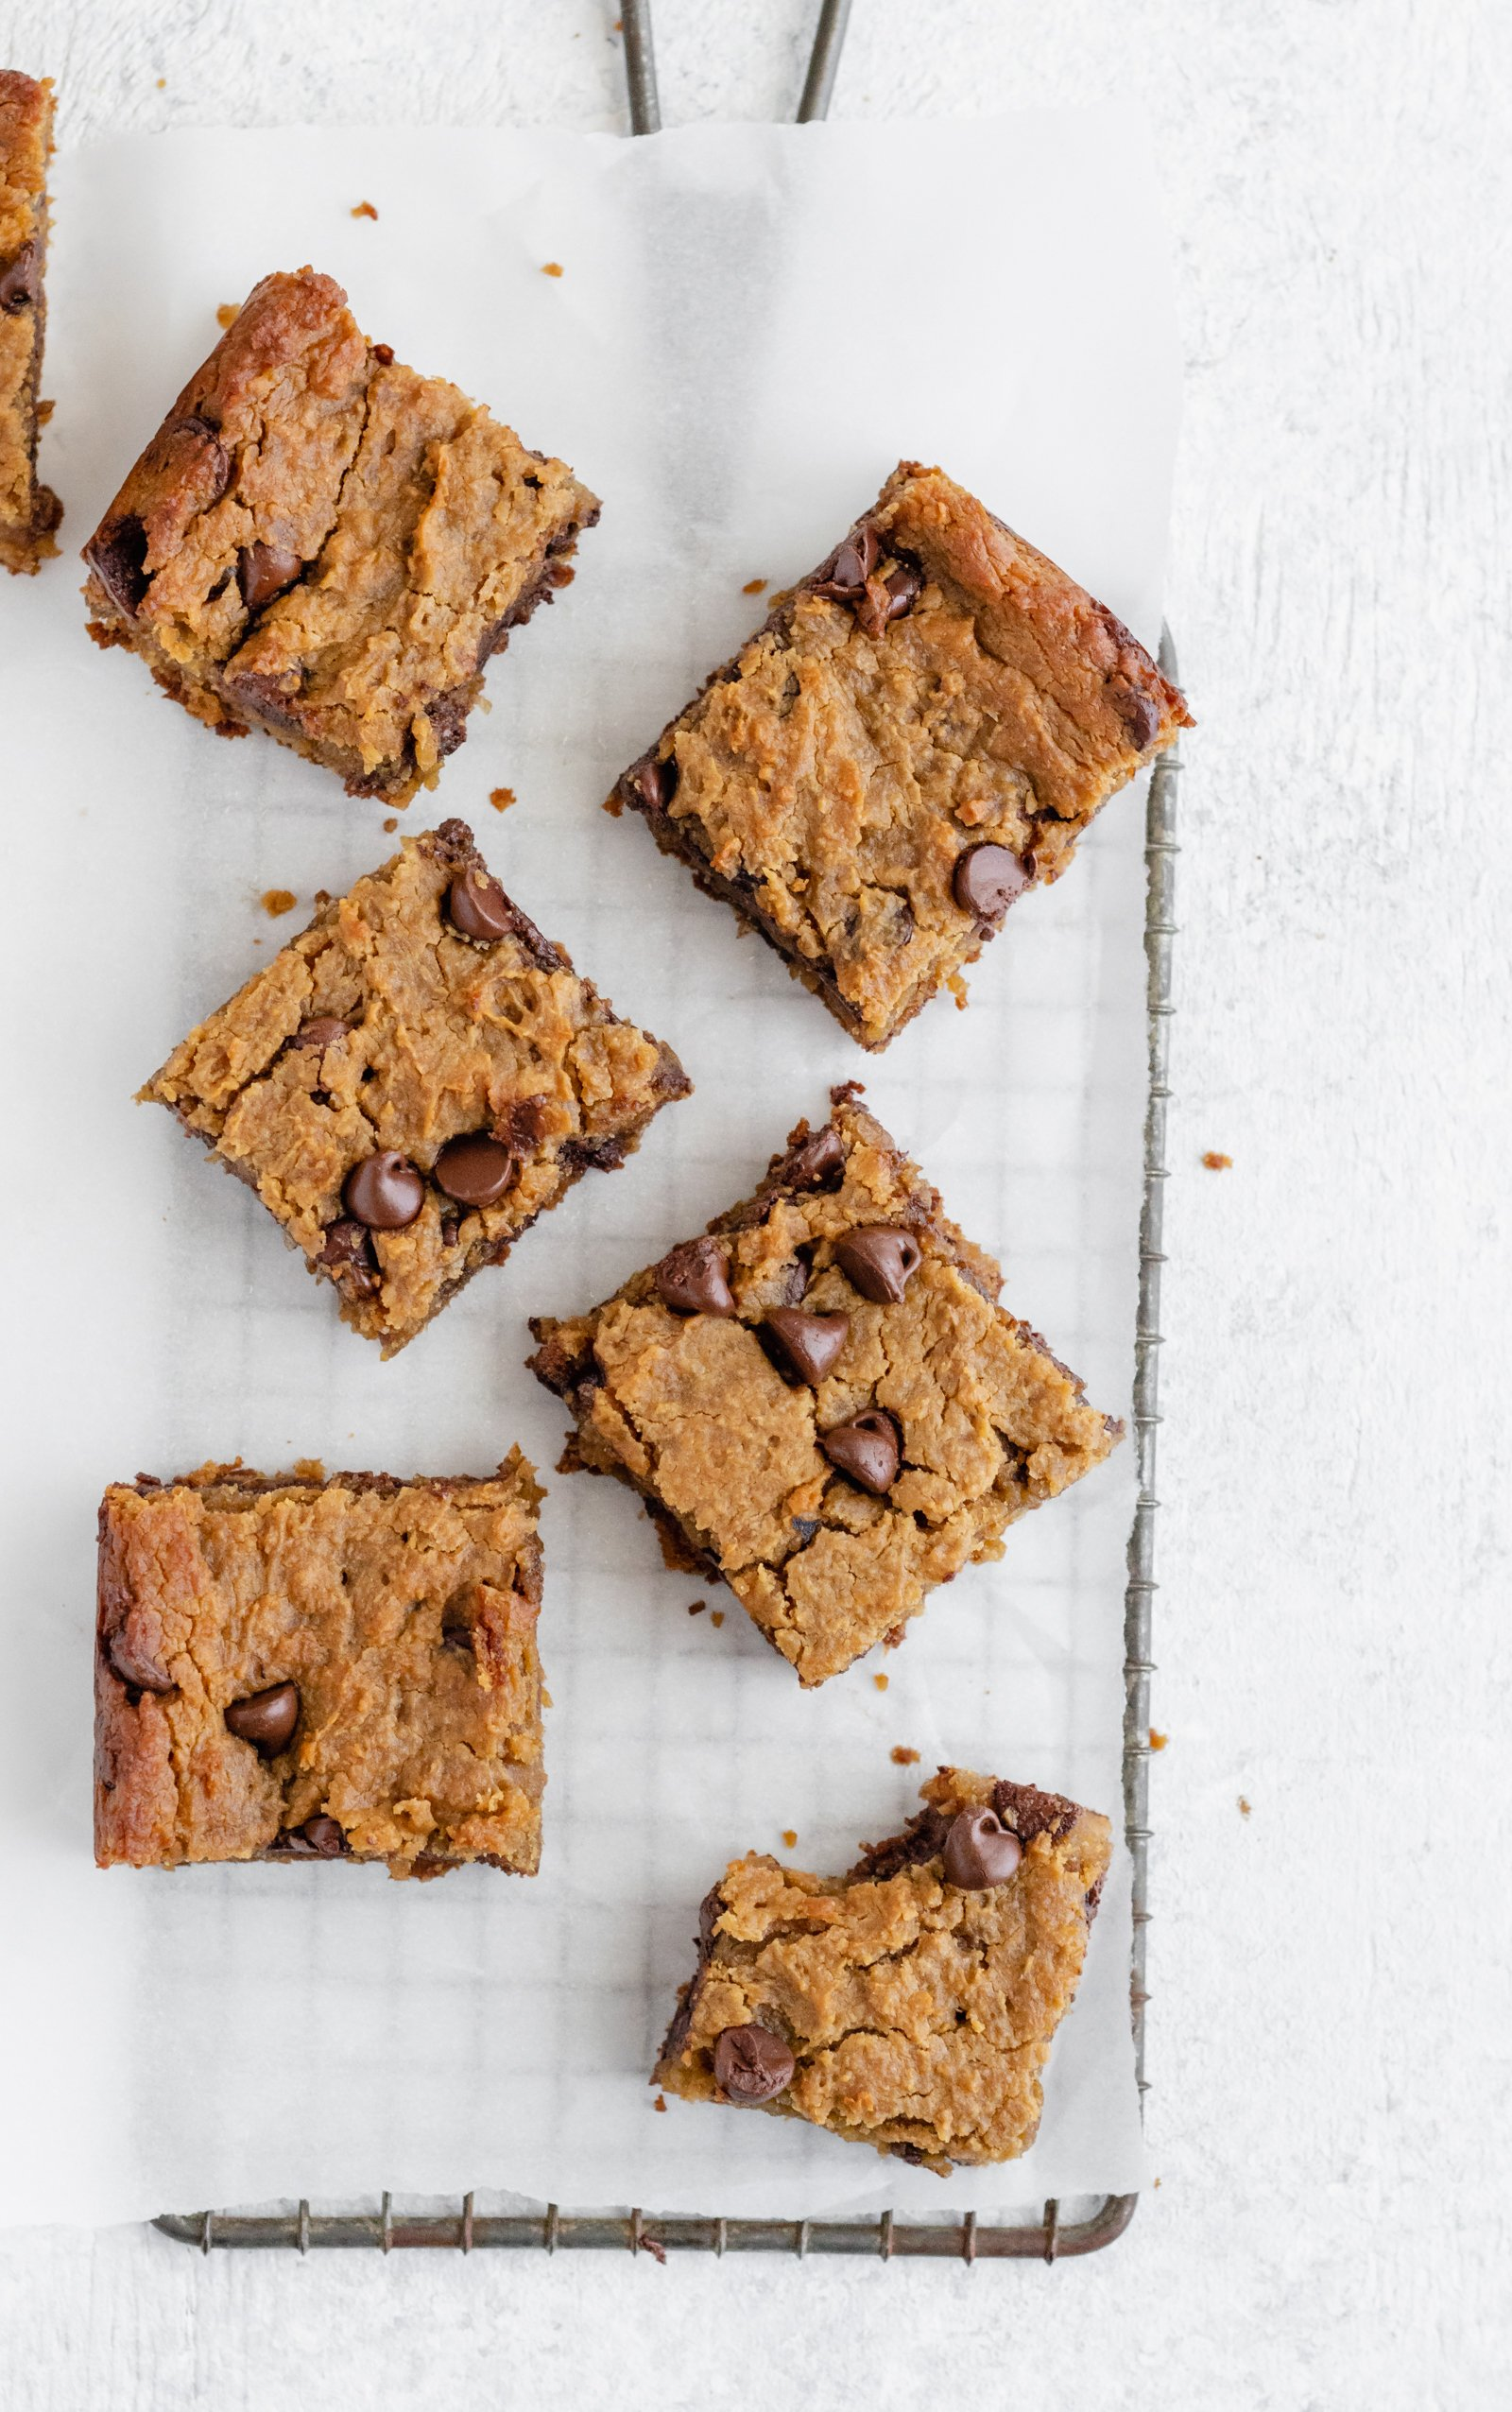 Secretly healthy chickpea blondies made with chickpeas, peanut butter, pure maple syrup and chocolate. Taste amazingly like peanut butter cookies. Flourless and no butter!